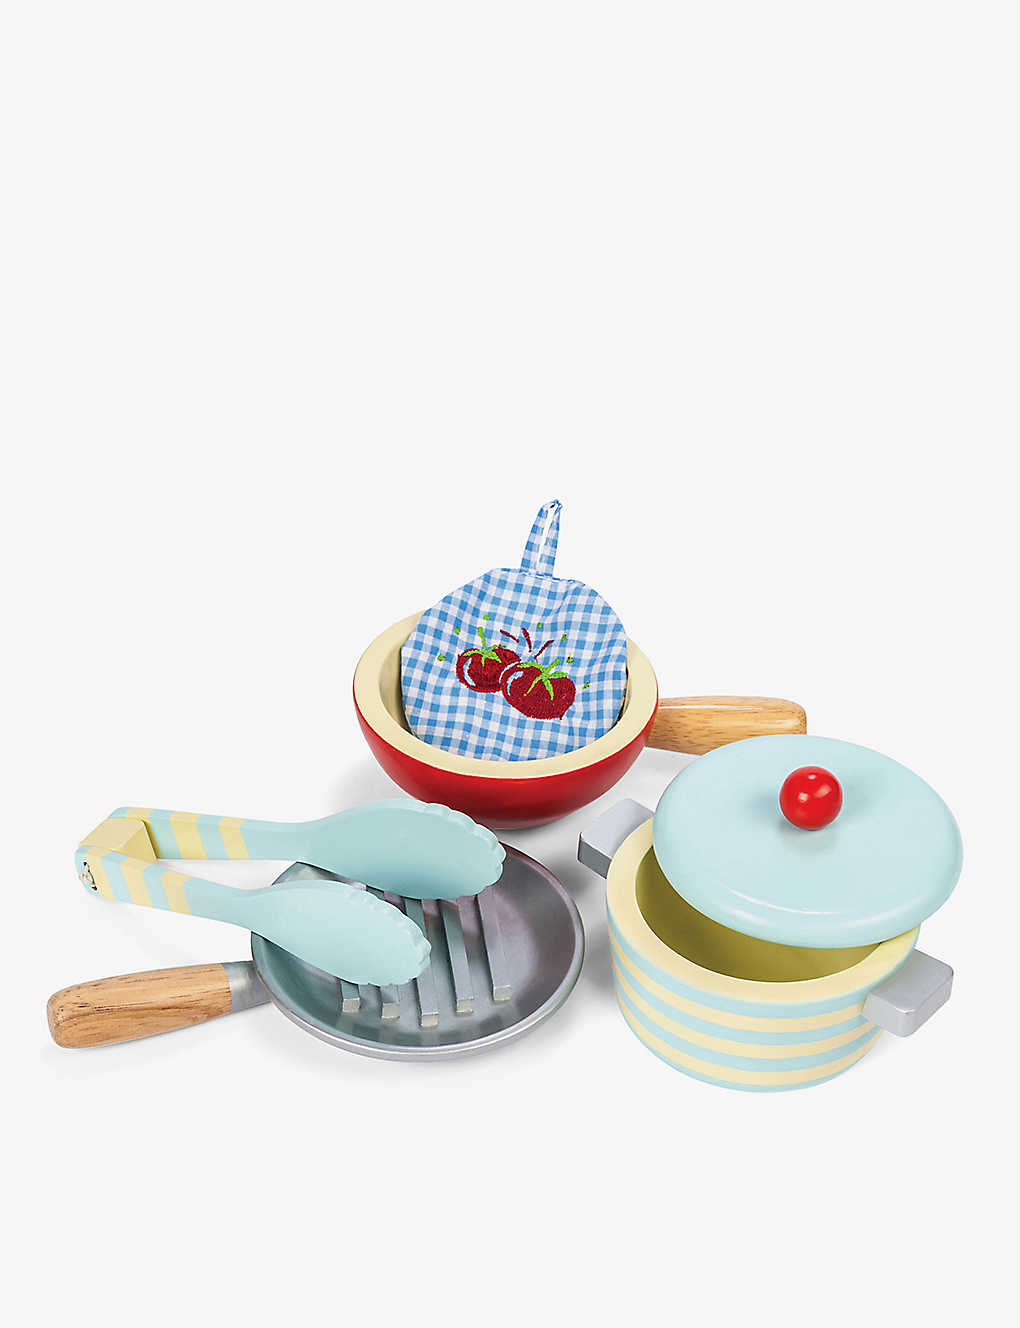 LE TOY VAN: Pots and pans wooden set